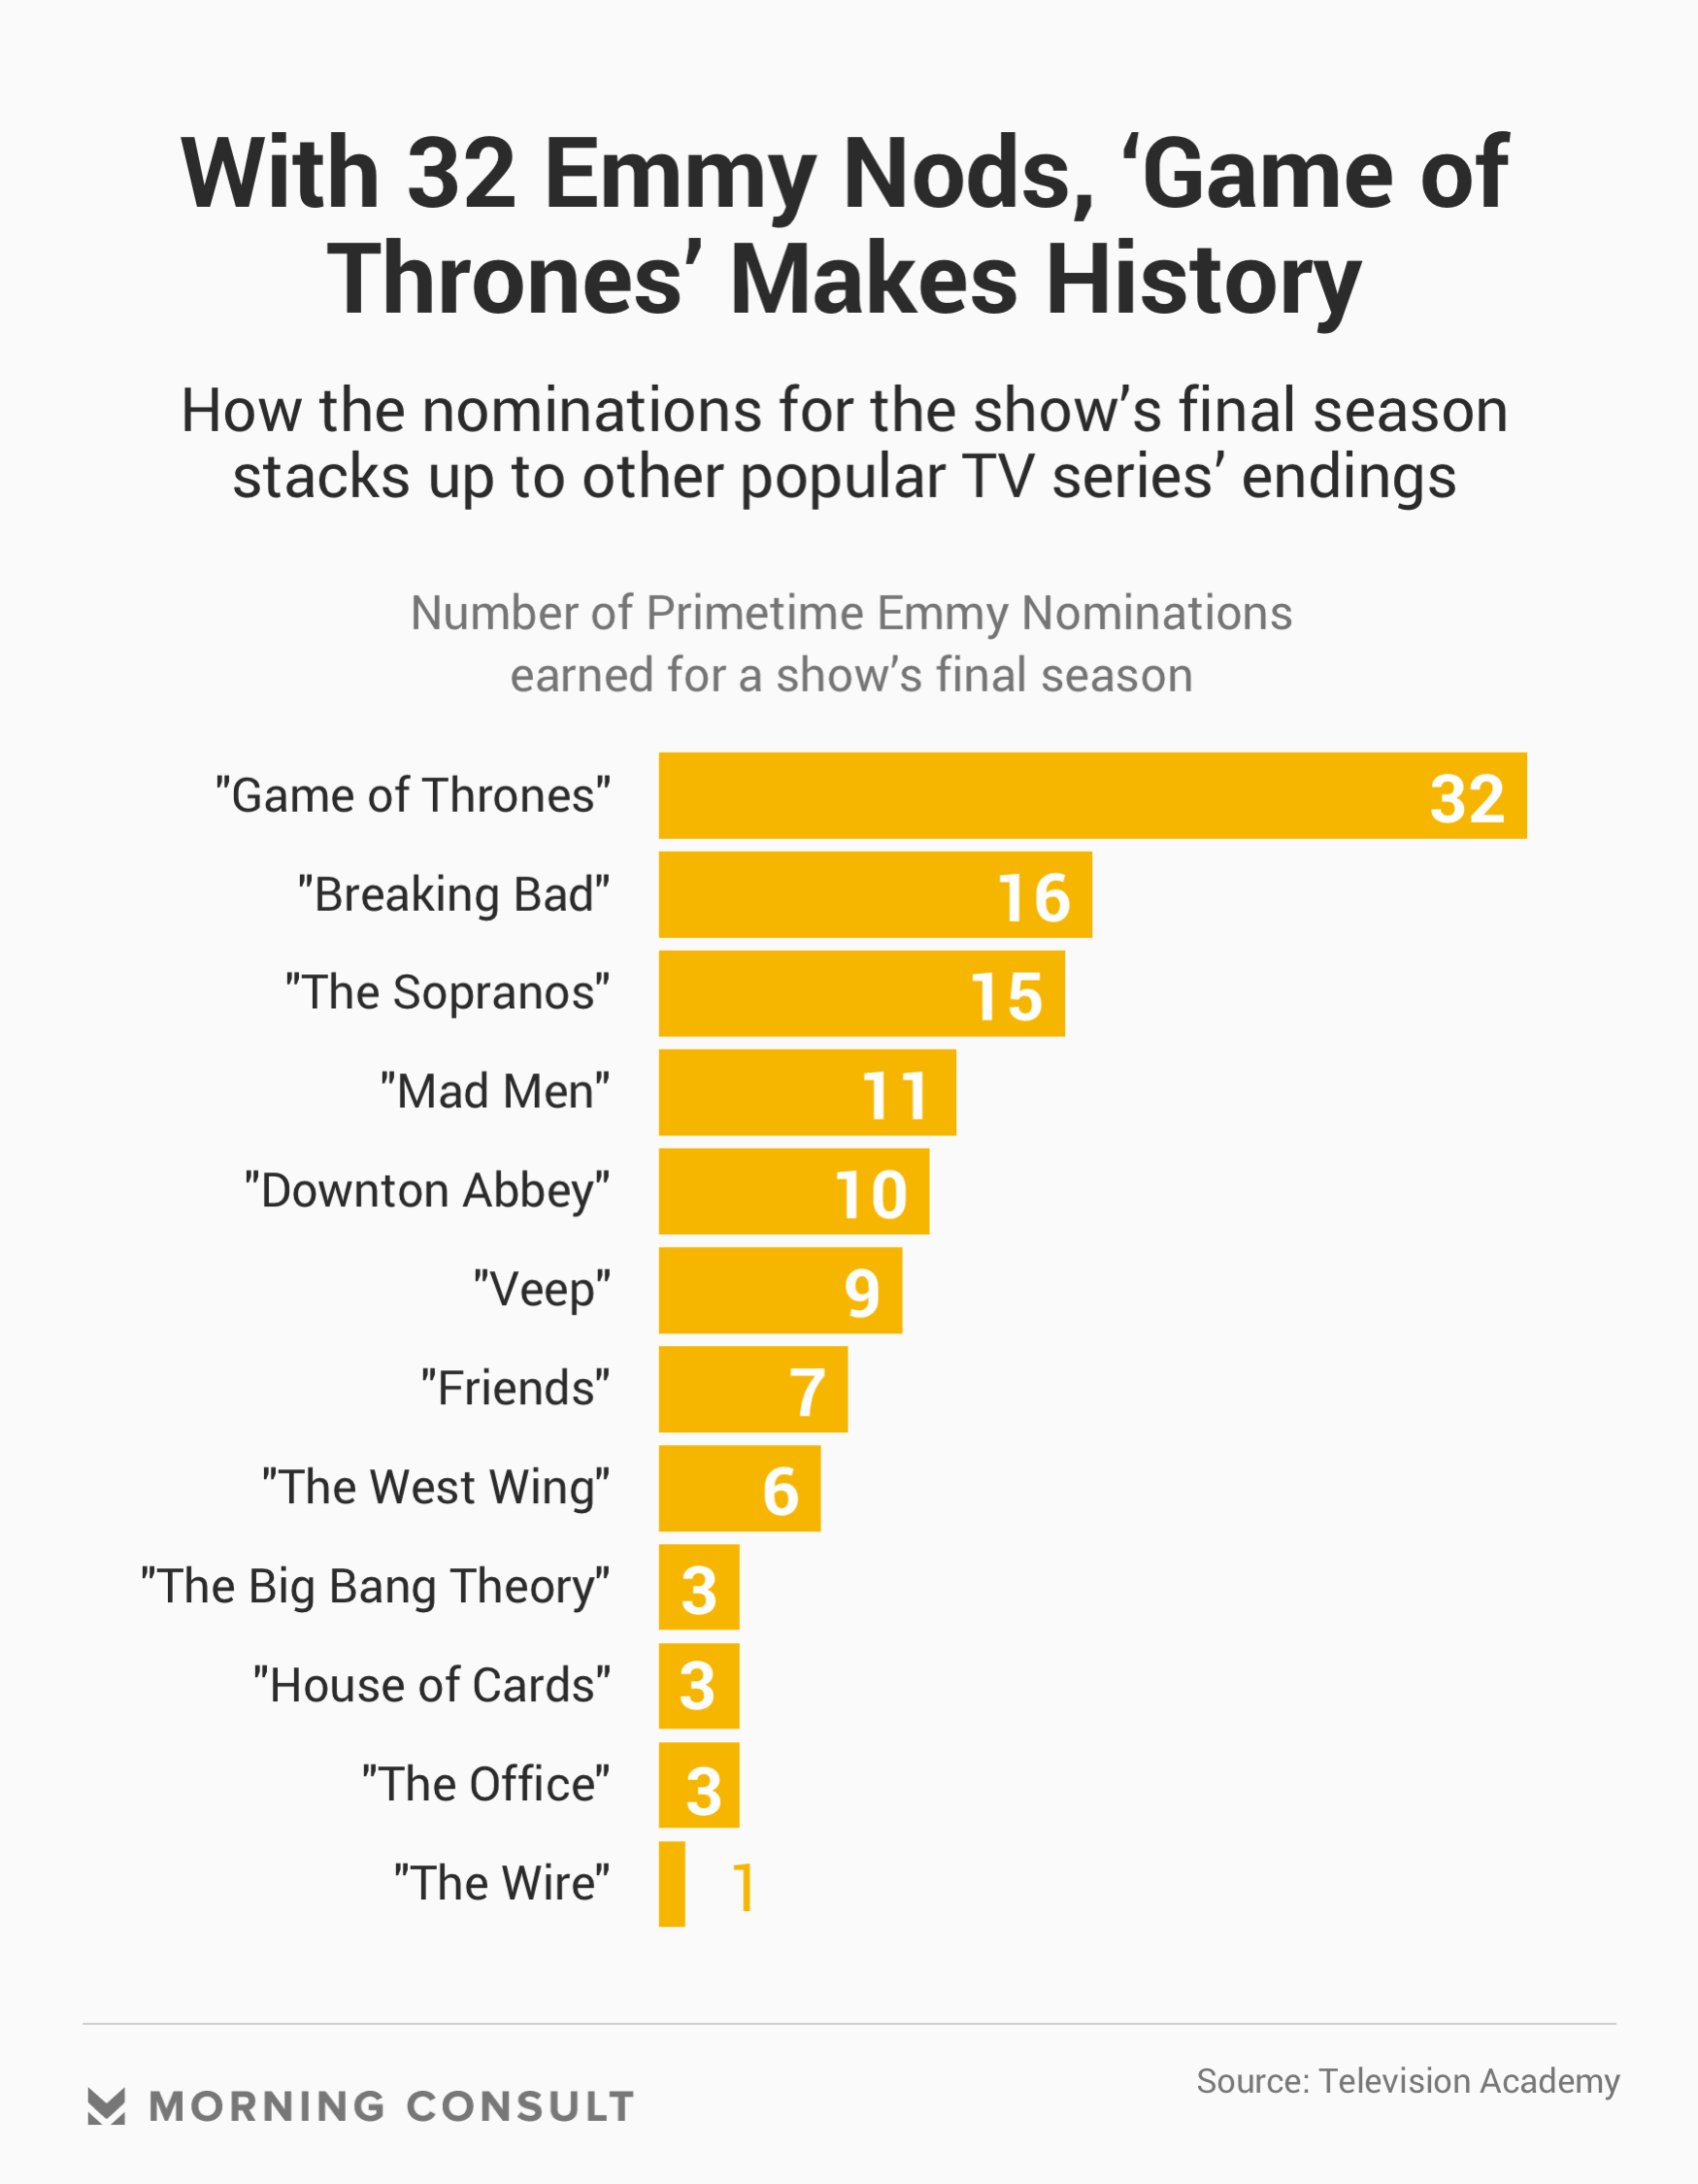 With 32 Emmy Nominations, 'Game of Thrones' Bests Other